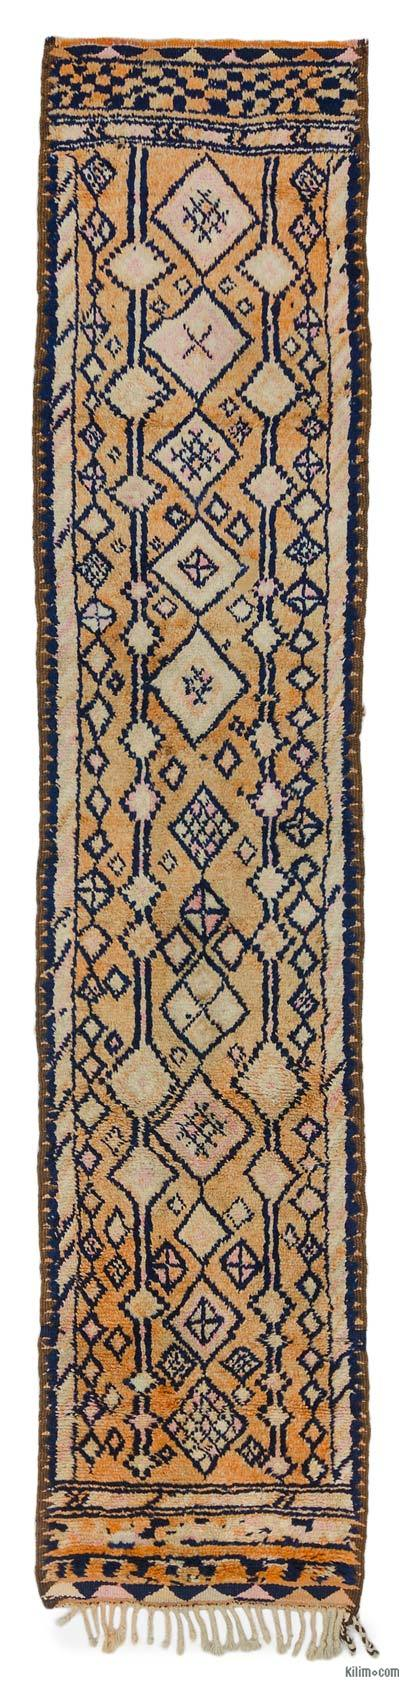 "Vintage Turkish Runner Rug - 2' 6"" x 11' 10"" (30 in. x 142 in.)"